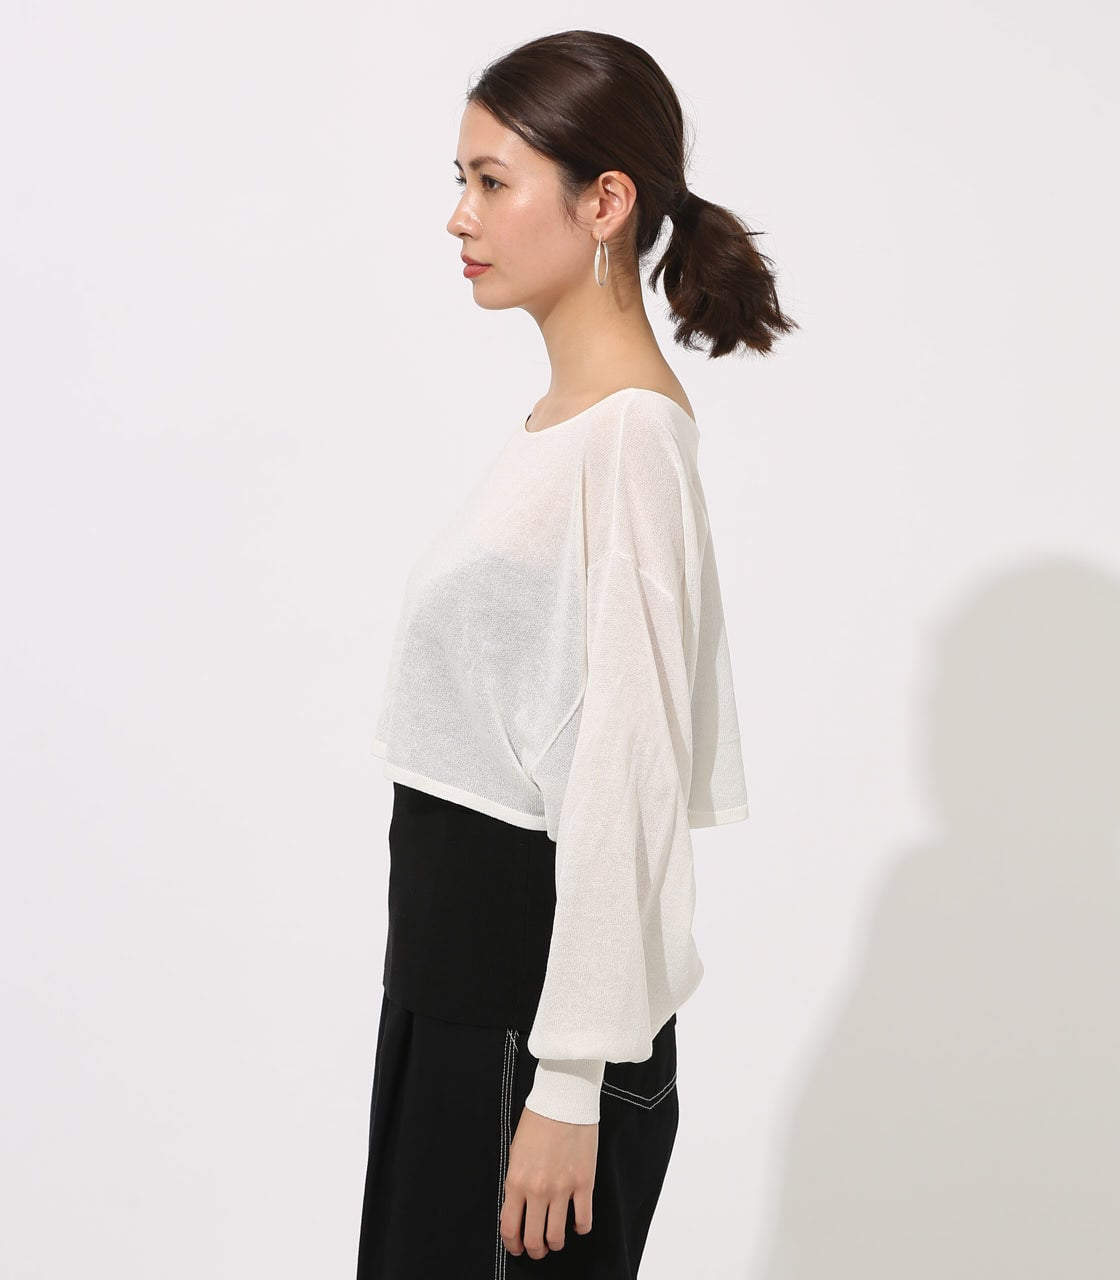 【AZUL BY MOUSSY】ONE-SHOULDER KNIT SET TOPS 詳細画像 O/WHT 6